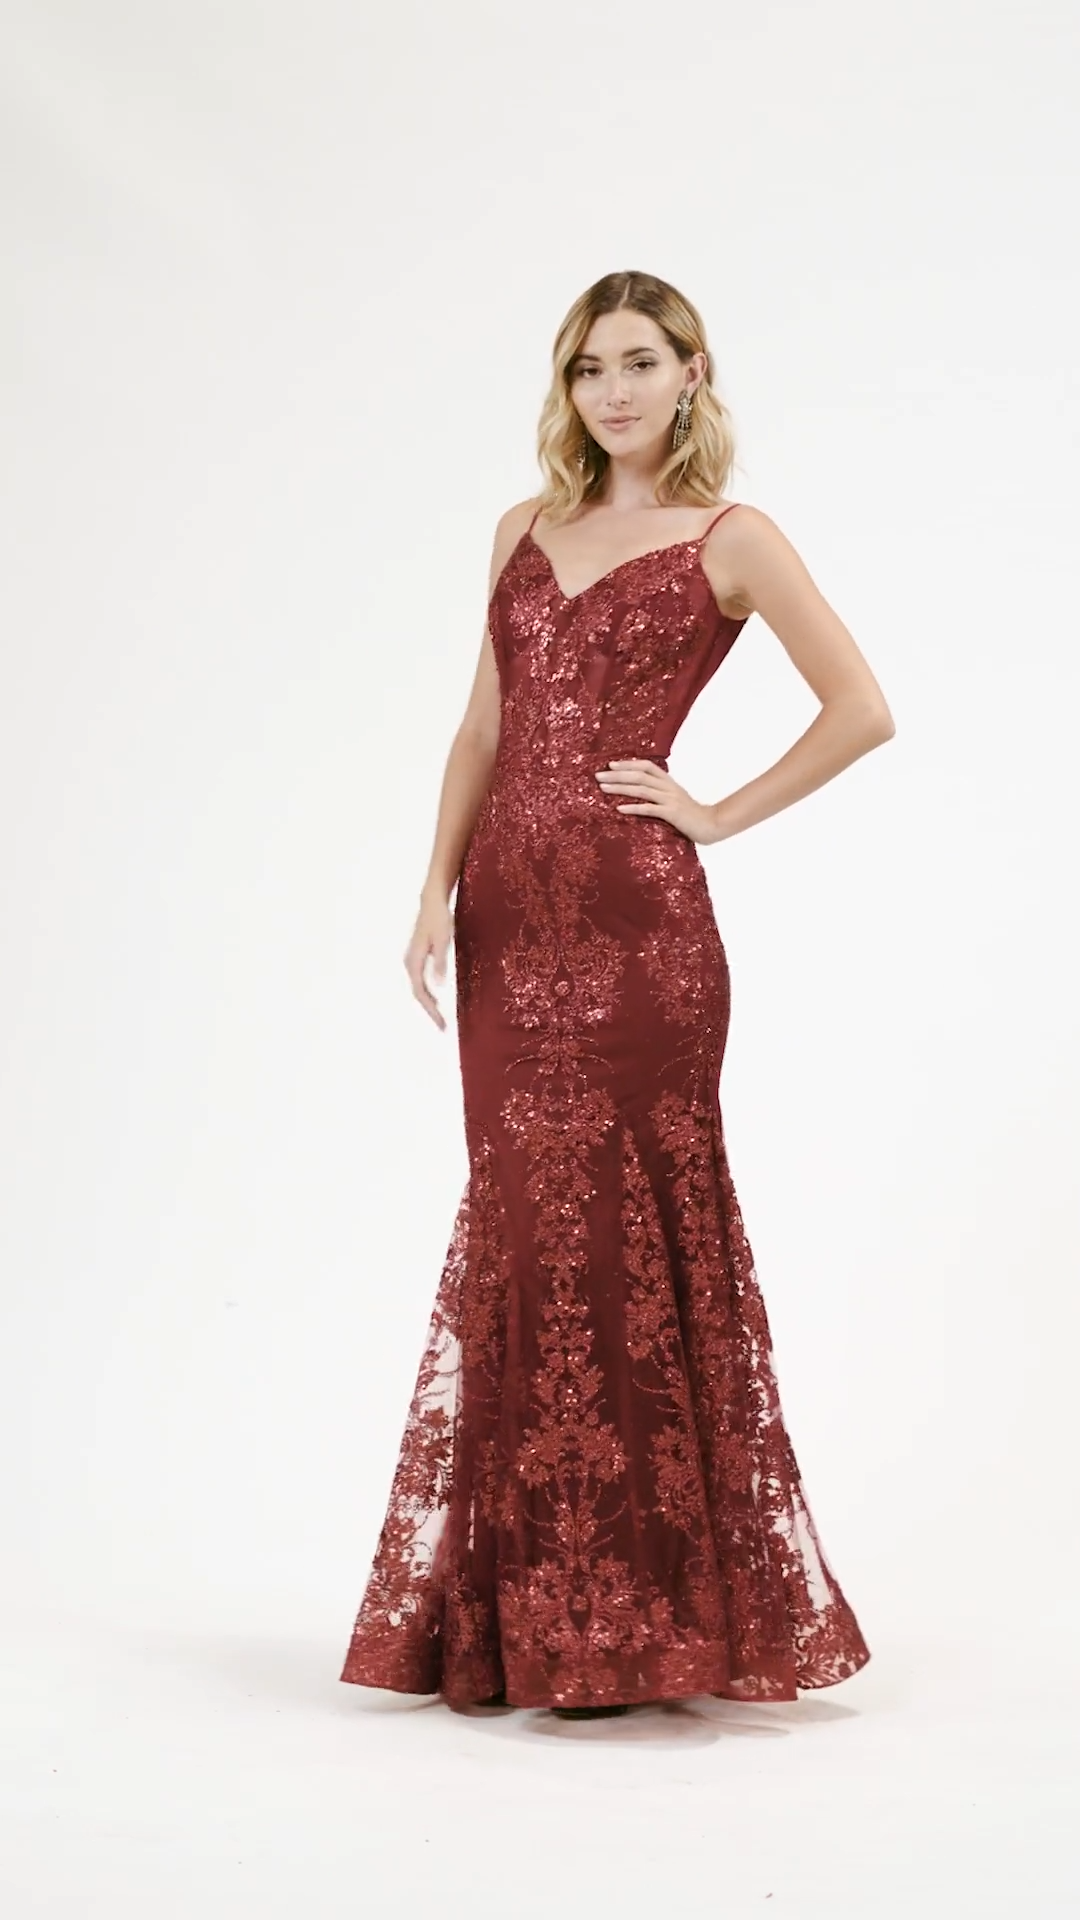 Val Stefani 3930RY fun and flirty glitter sequin print tulle unlined mermaid with V-necklines and spaghetti straps